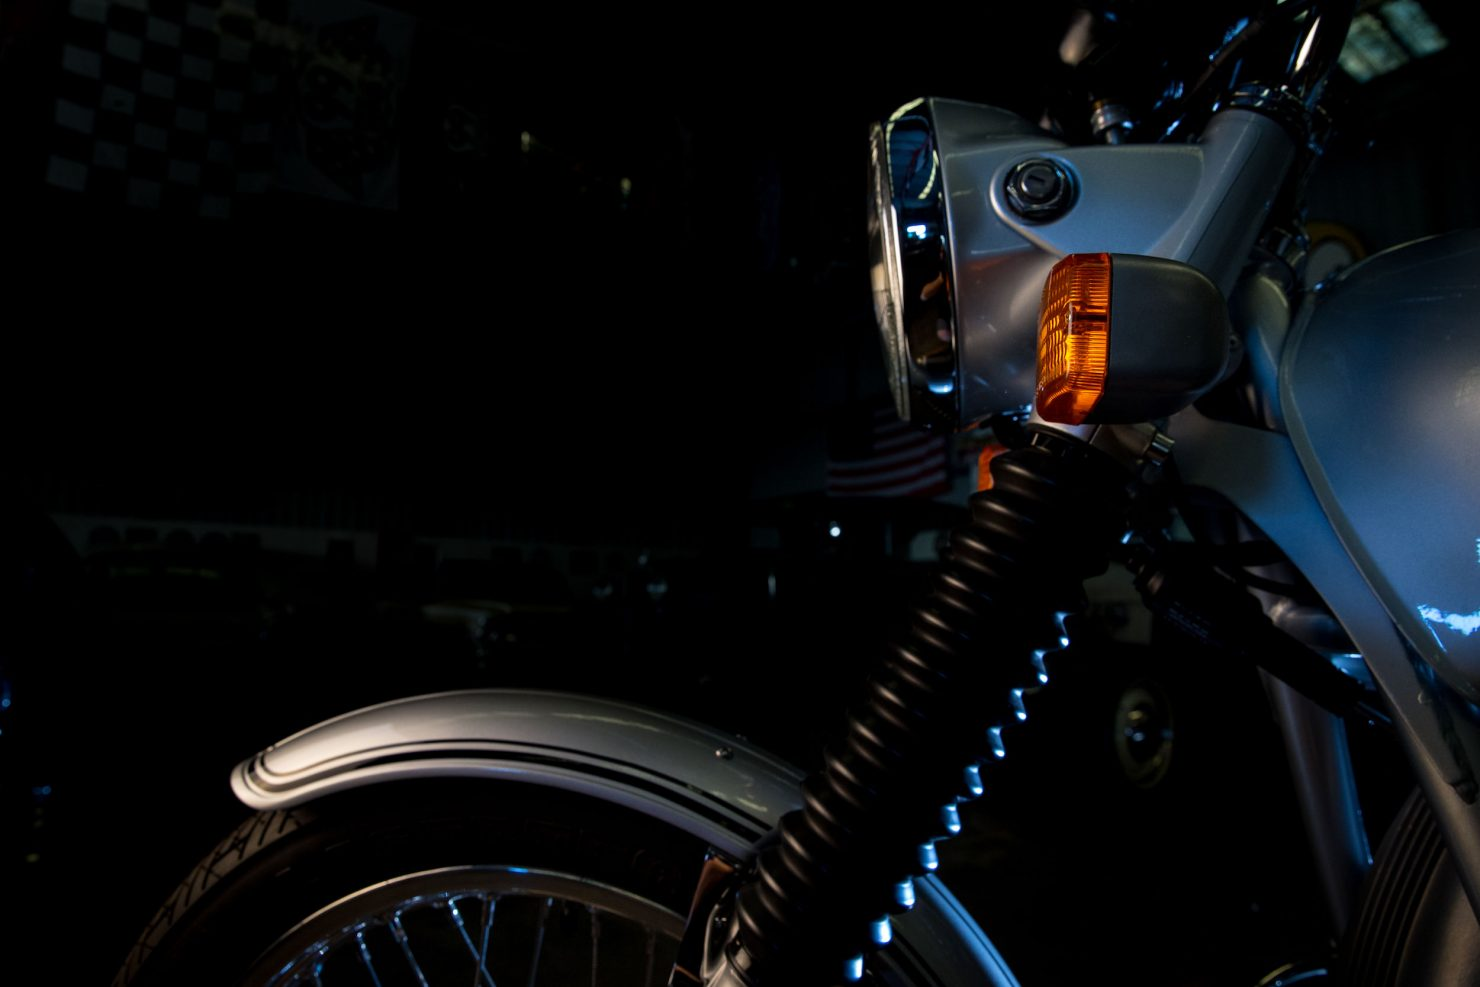 AM6P0461 1480x987 - Immaculately Restored: BMW R75/6